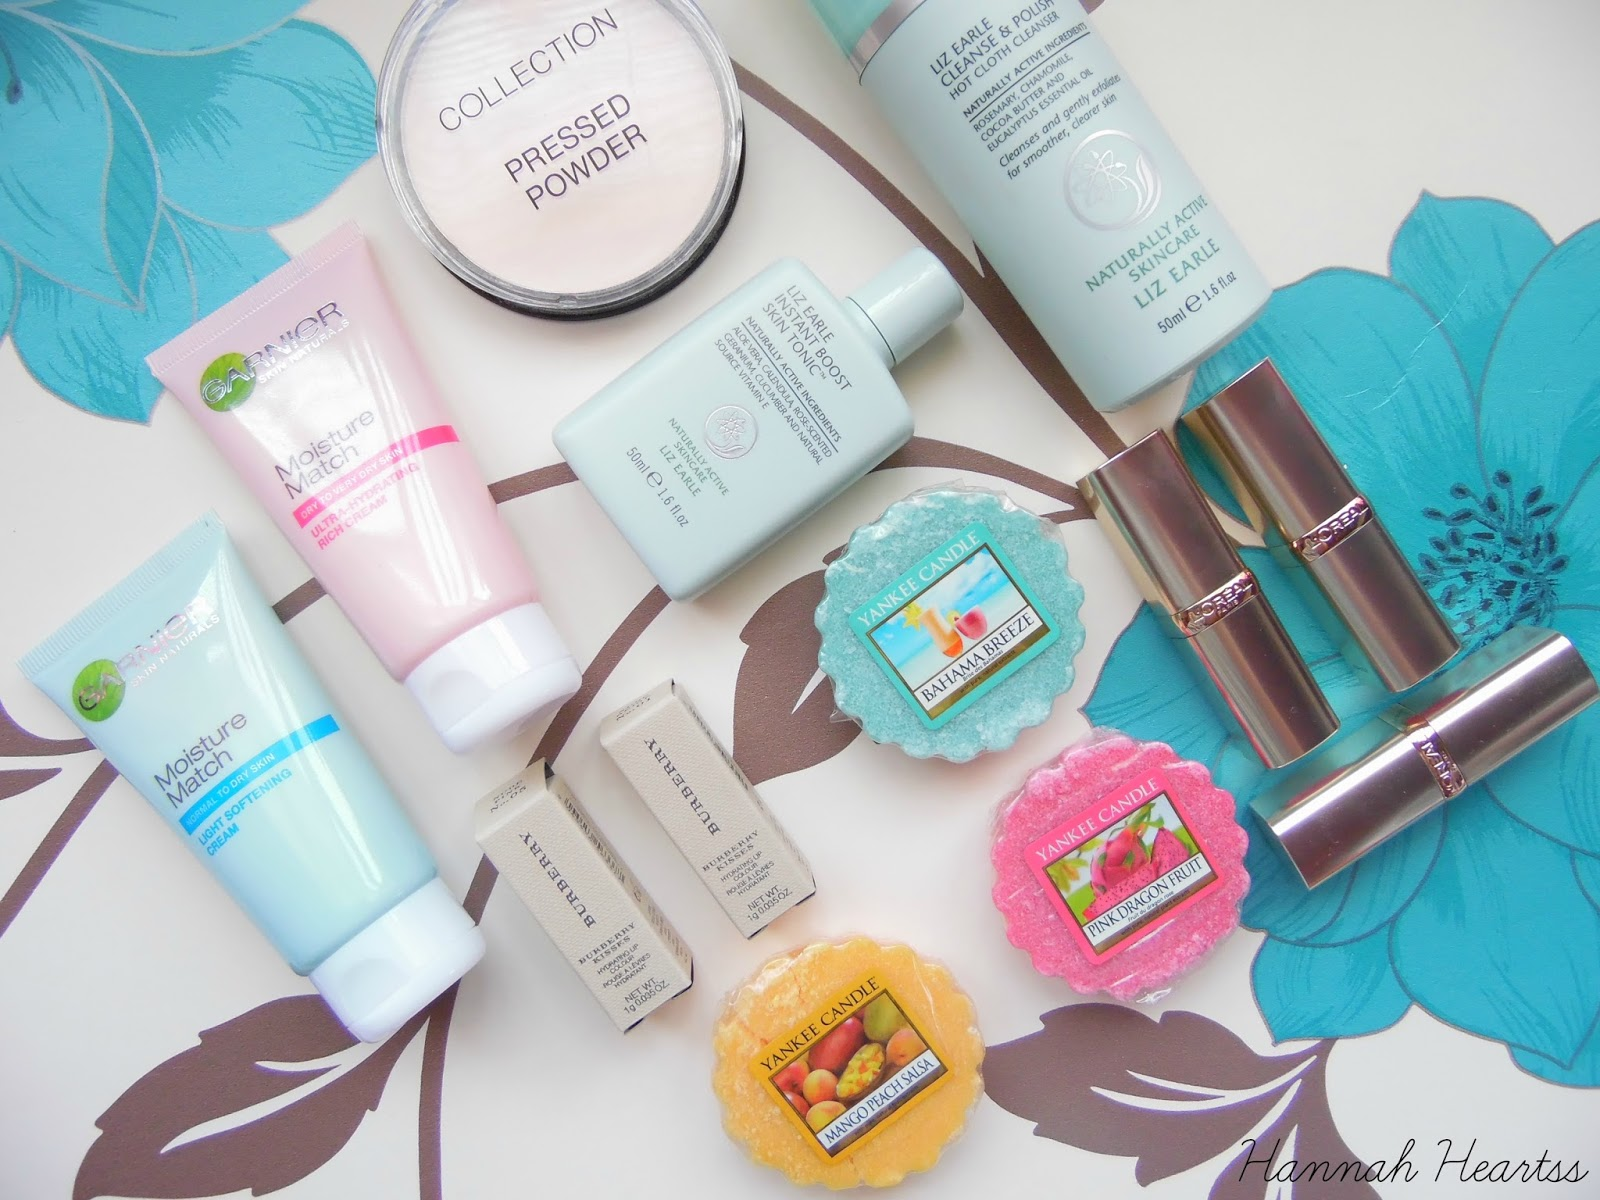 Collective Haul April 2015